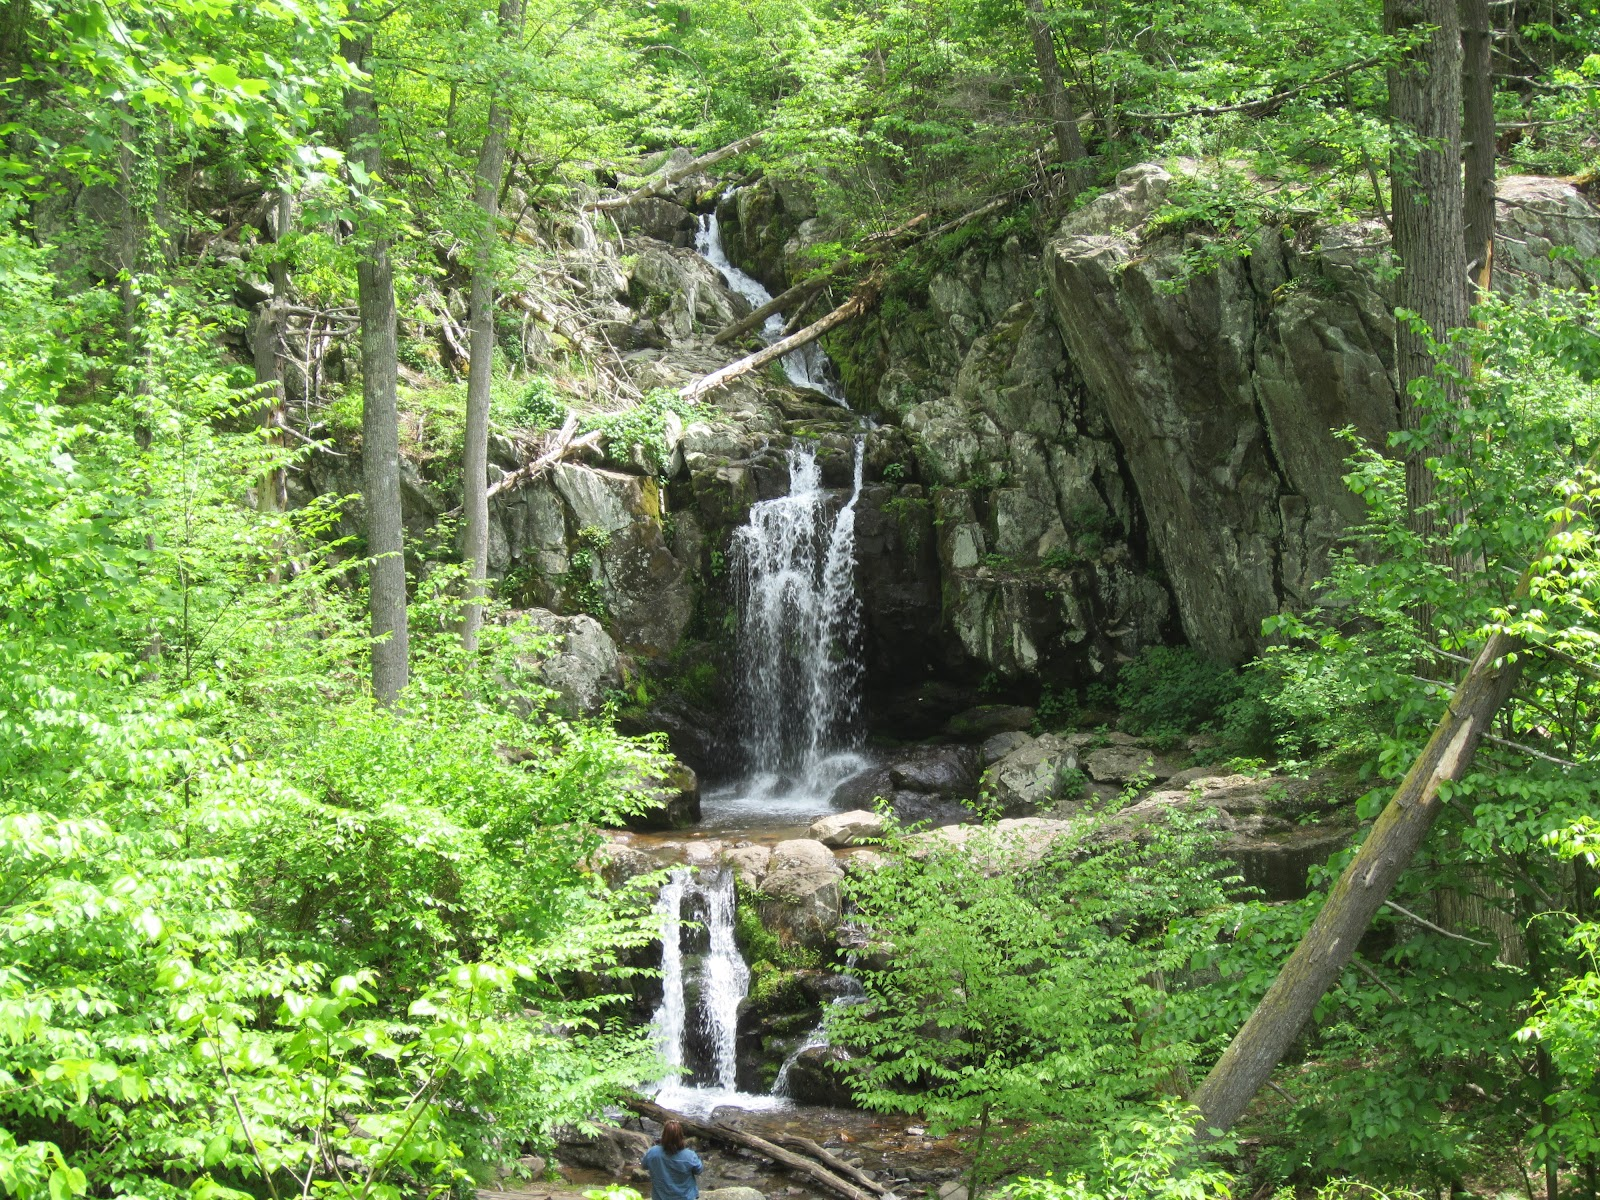 Rita Had Meanwhile Settled In By The Falls For A Pleasant, Unhurried Lunch  With A View Of Cascading Water. Soon, However, She Noticed That Something  Was Not ...